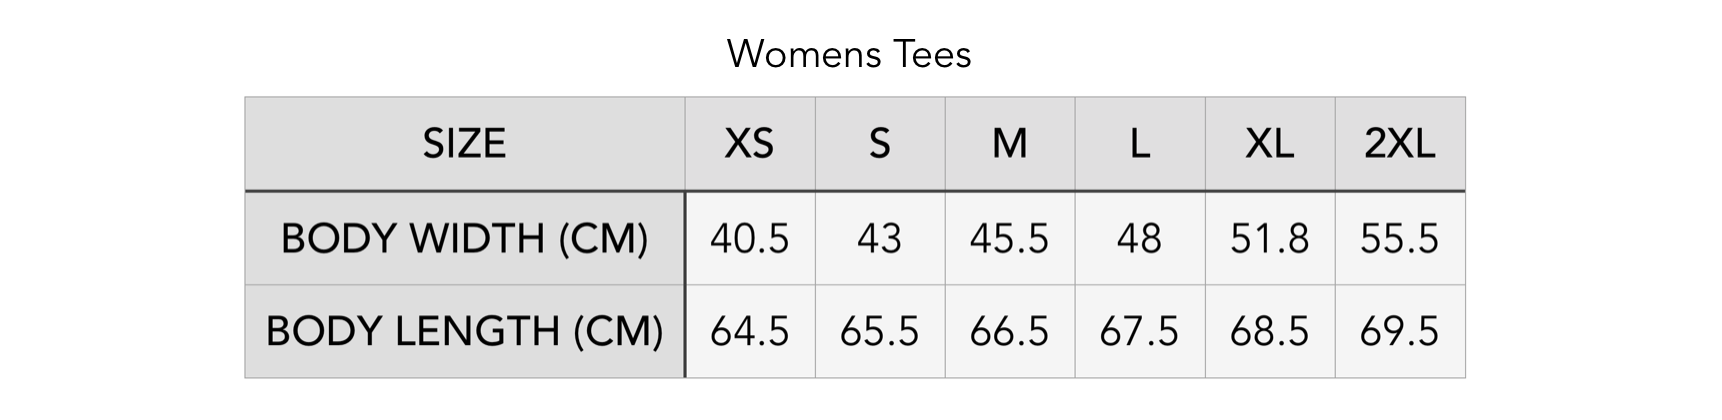 Sketch Tees (Womens Tees) SS size guide.png